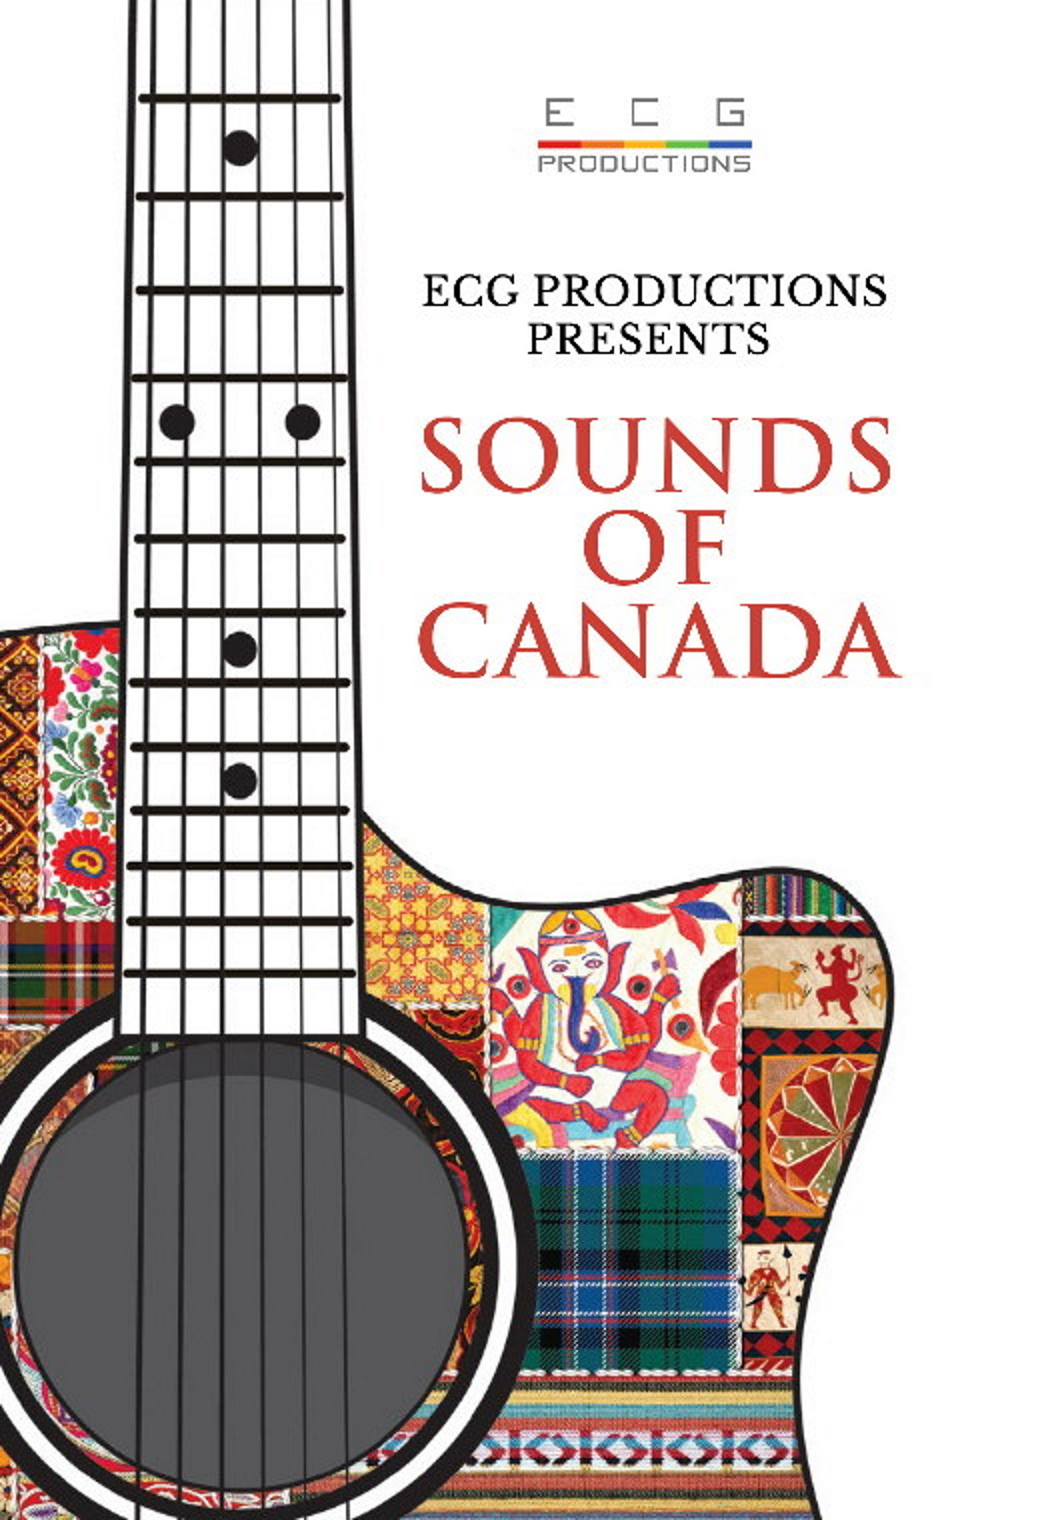 Sounds of Canada Poster (1)